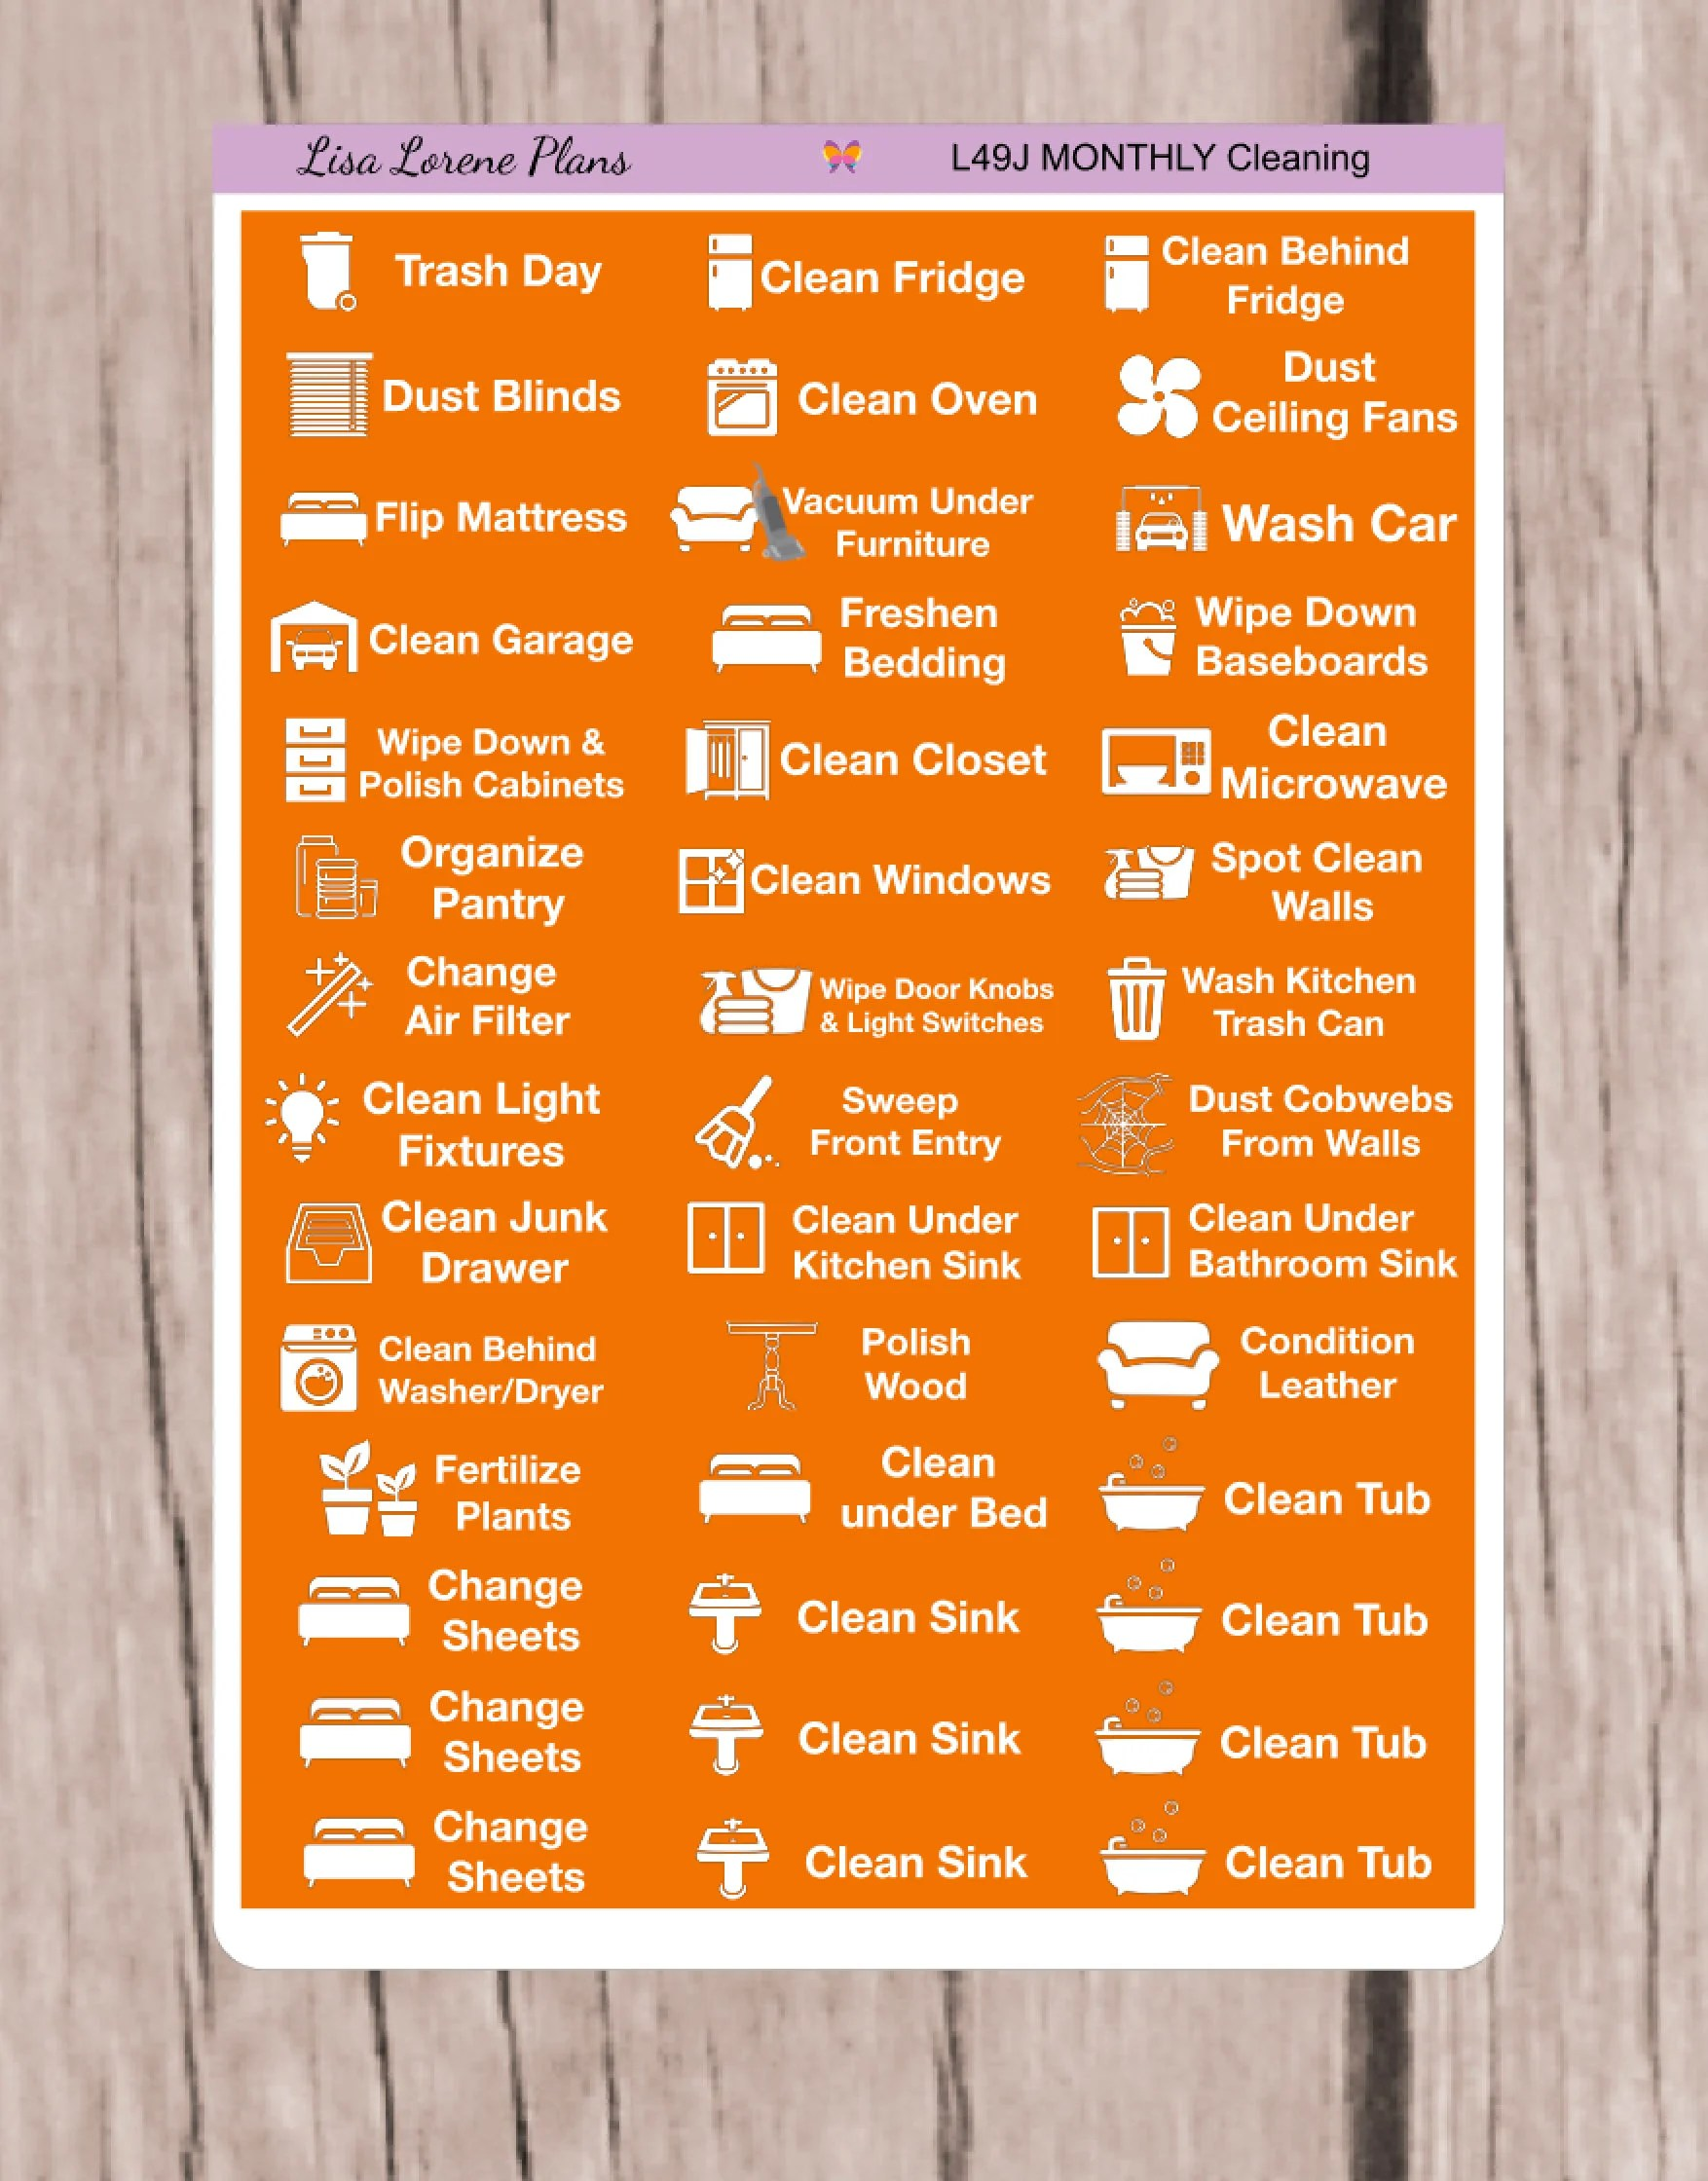 October Monthly Cleaning Housework Chores Schedule Planner Etsy